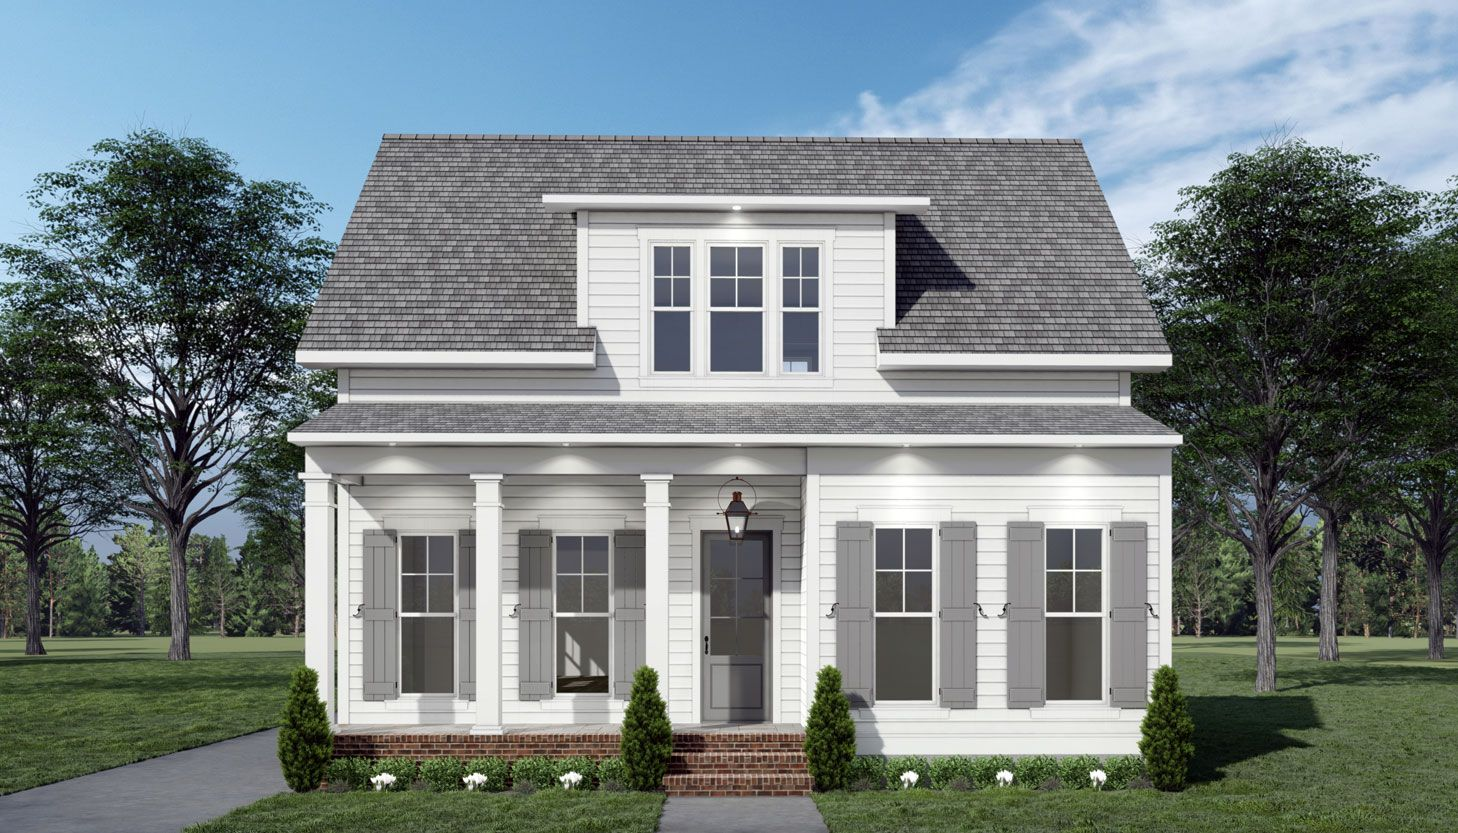 167 Jefferson Built By Tyson Construction 2020 Parade of Homes